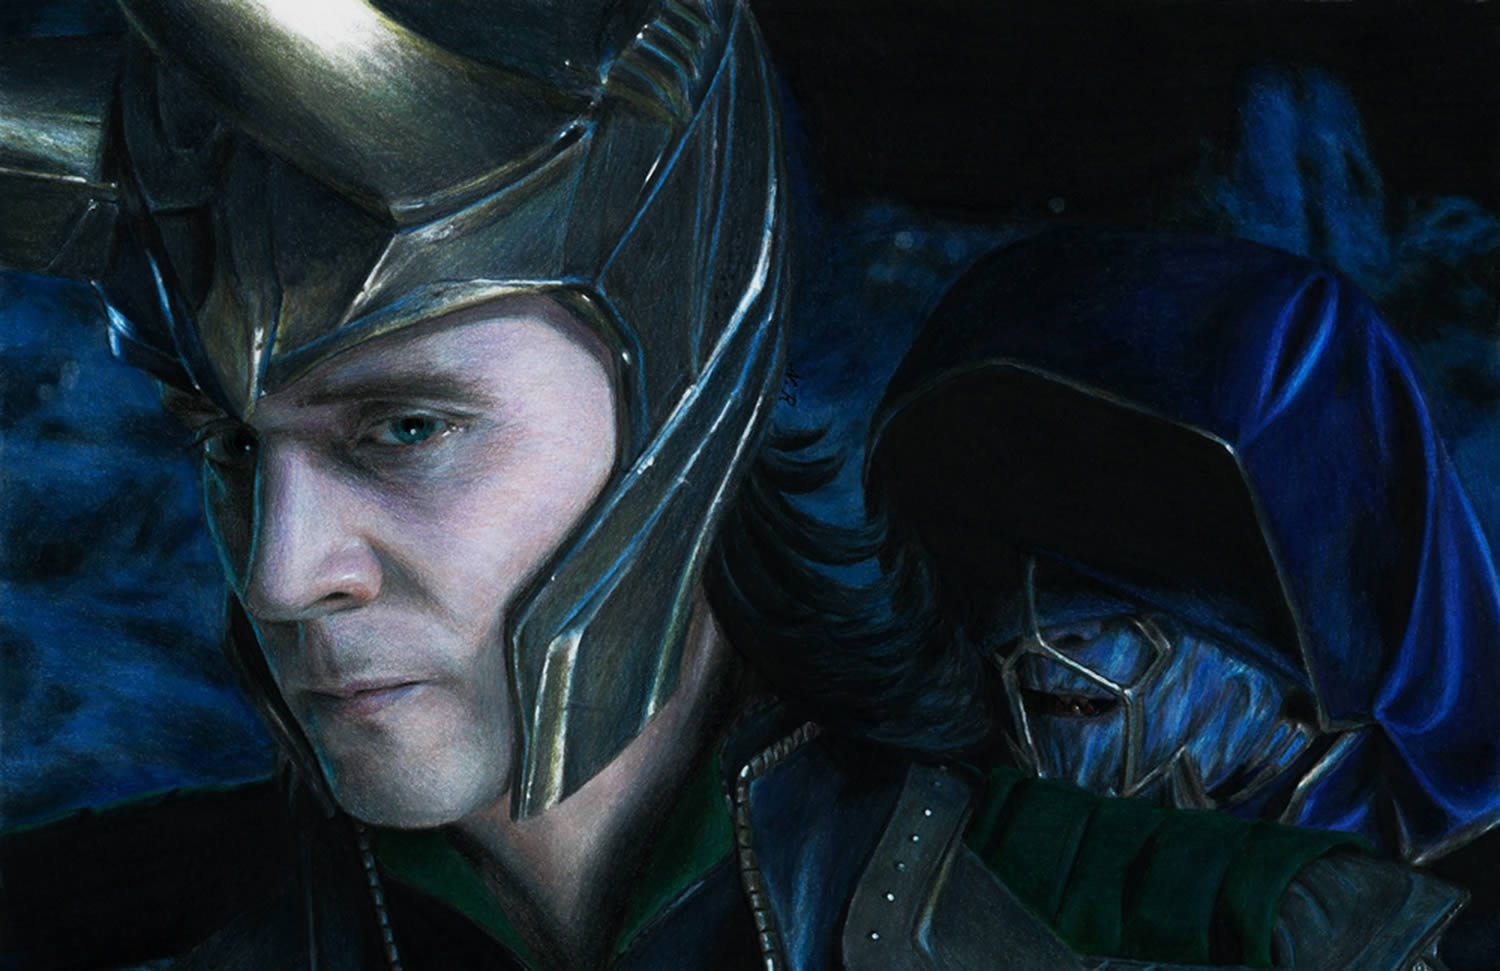 loki, hyperrealistic drawing